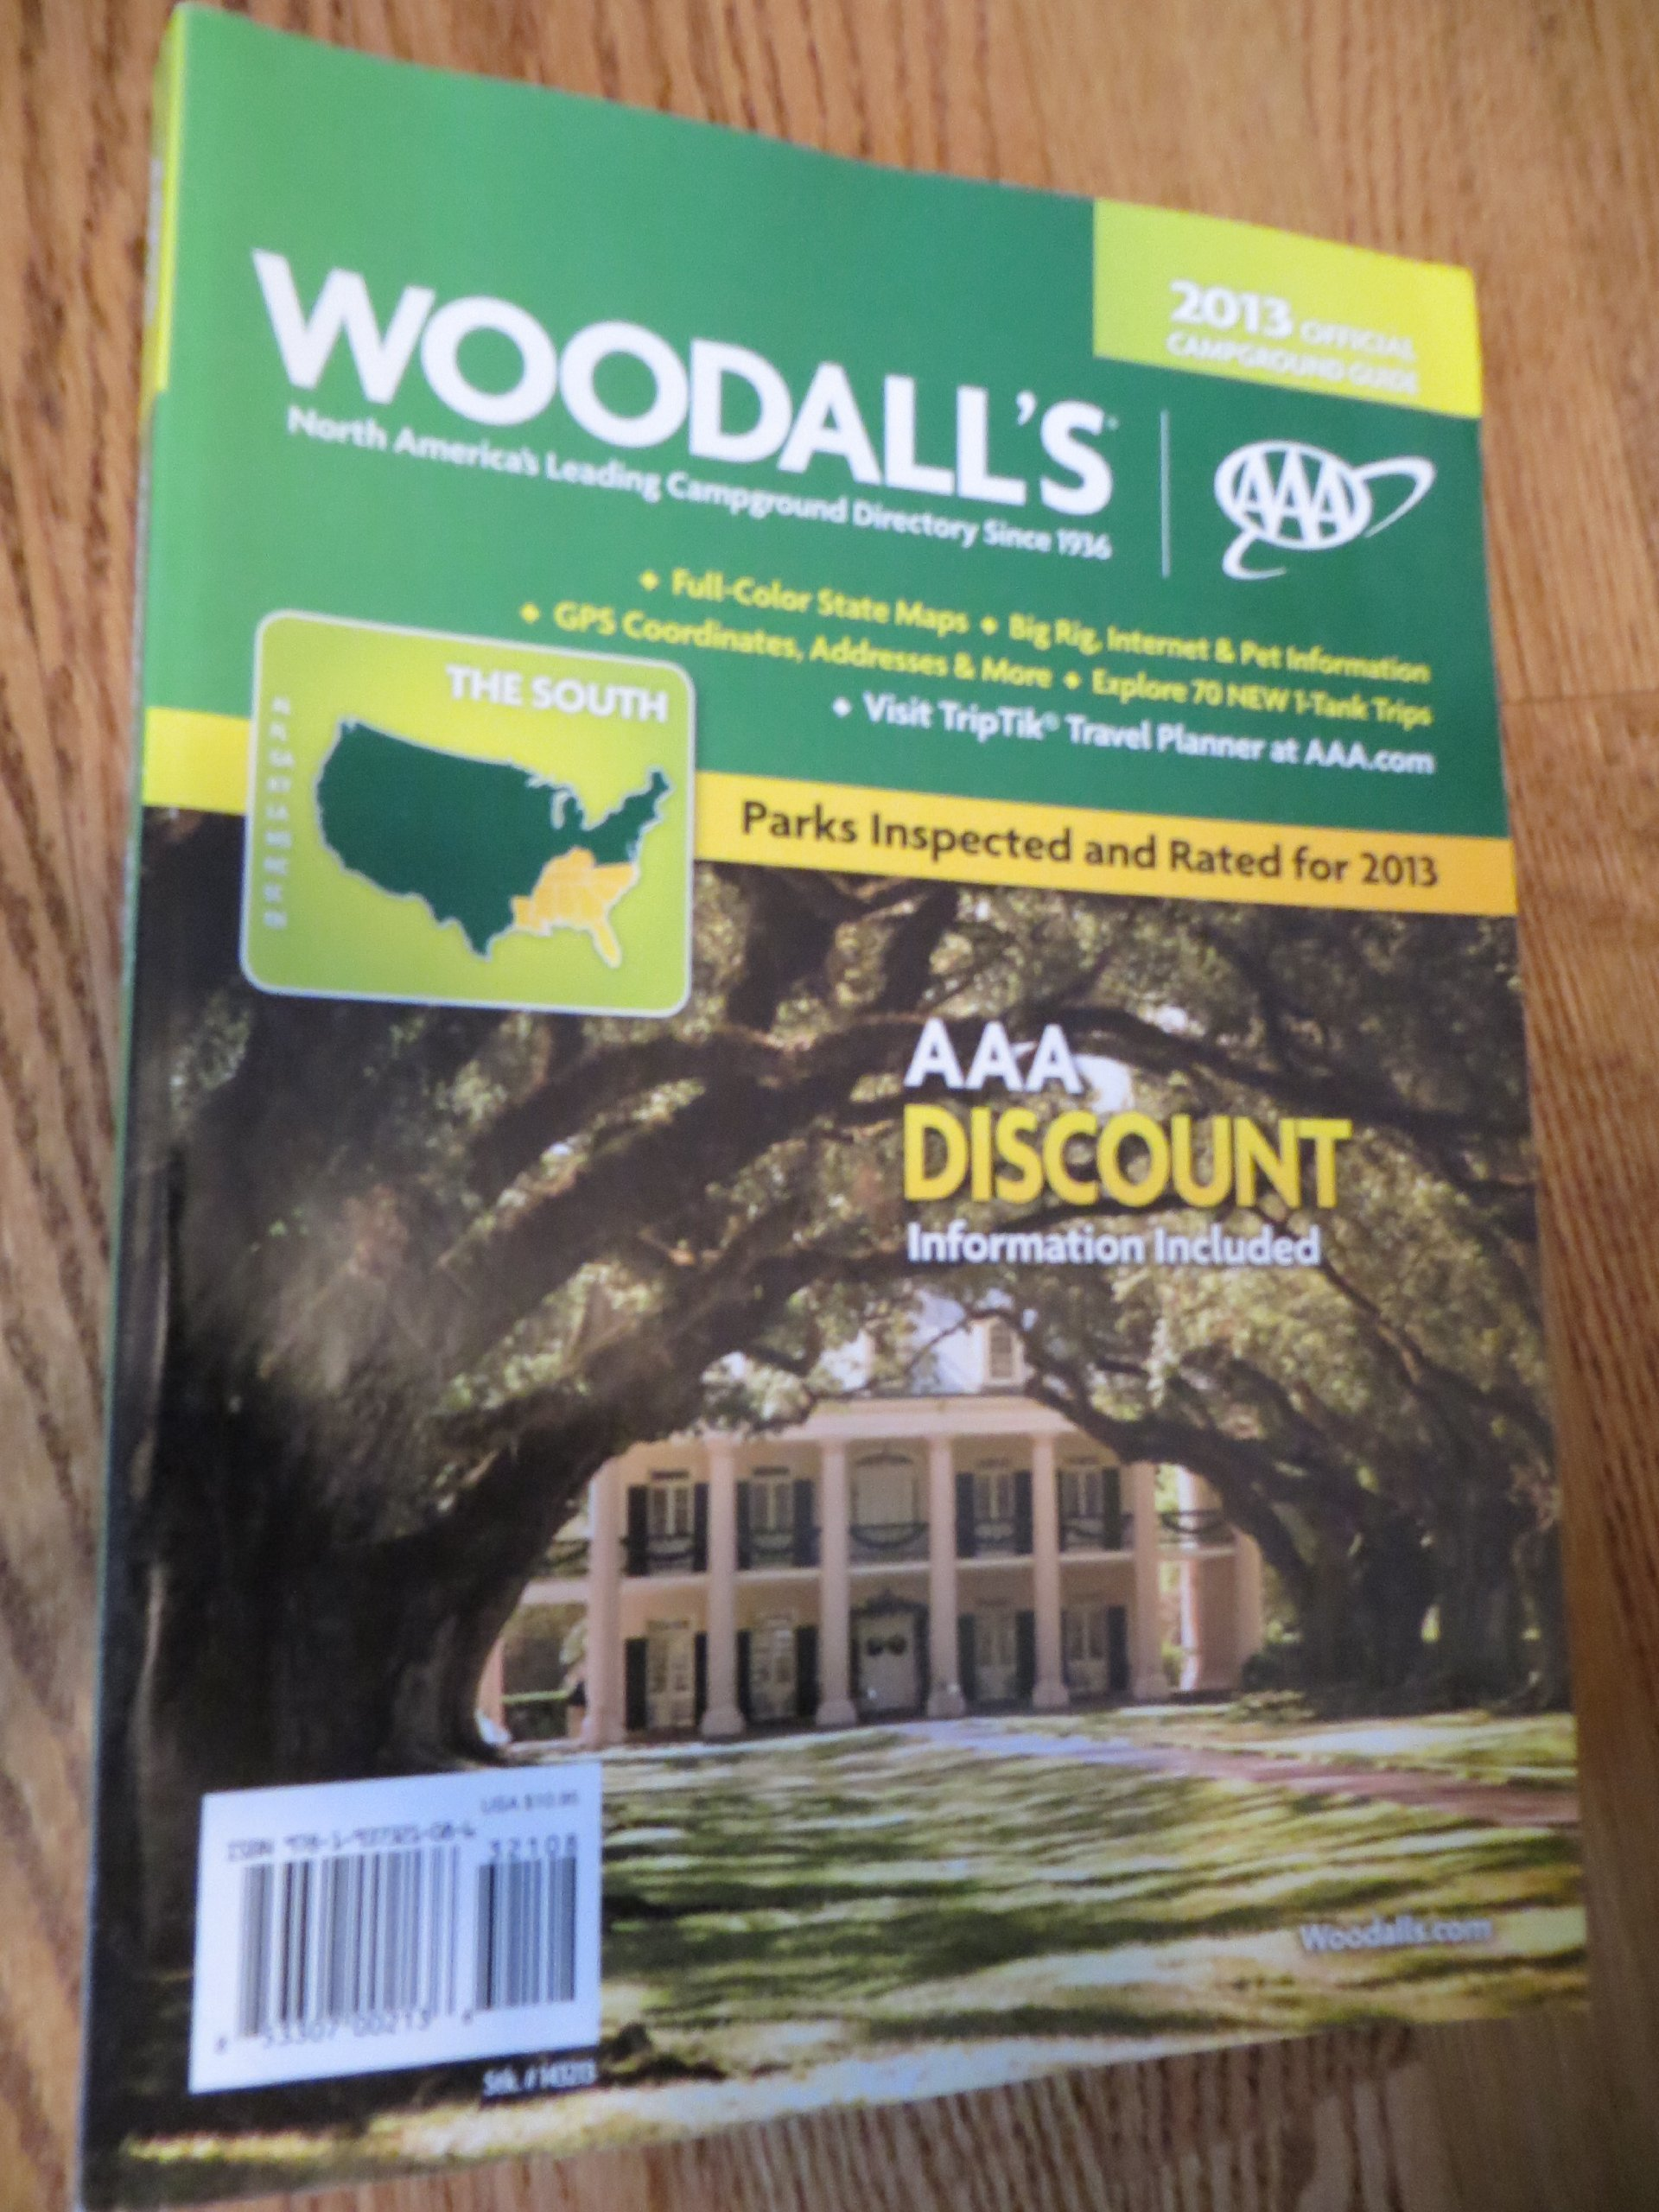 2013 Woodall's North American Campground Directory, the